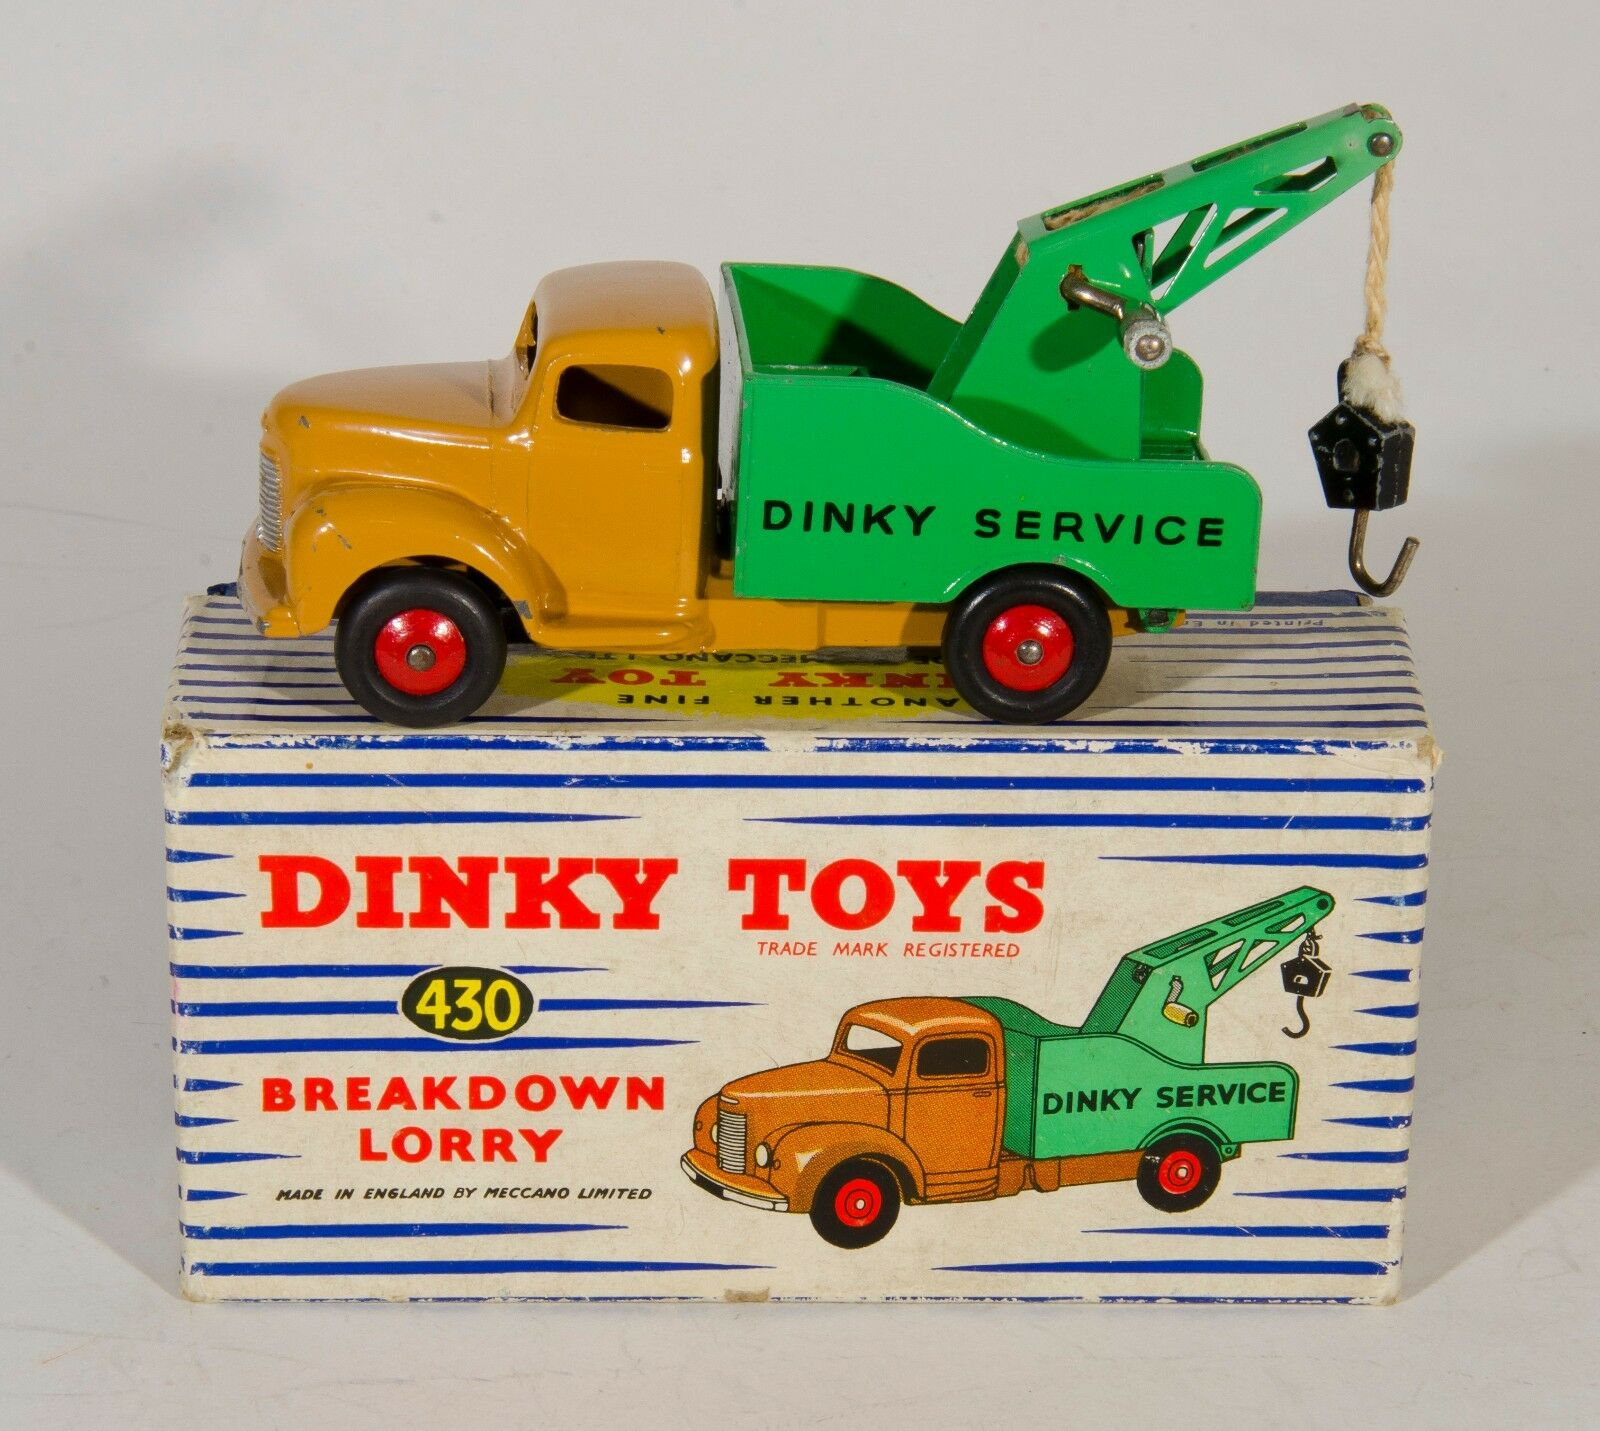 Dinky Toys 430 Commer Breakdown Lorry. 1st Issue. Tan Green. Boxed. 1950's